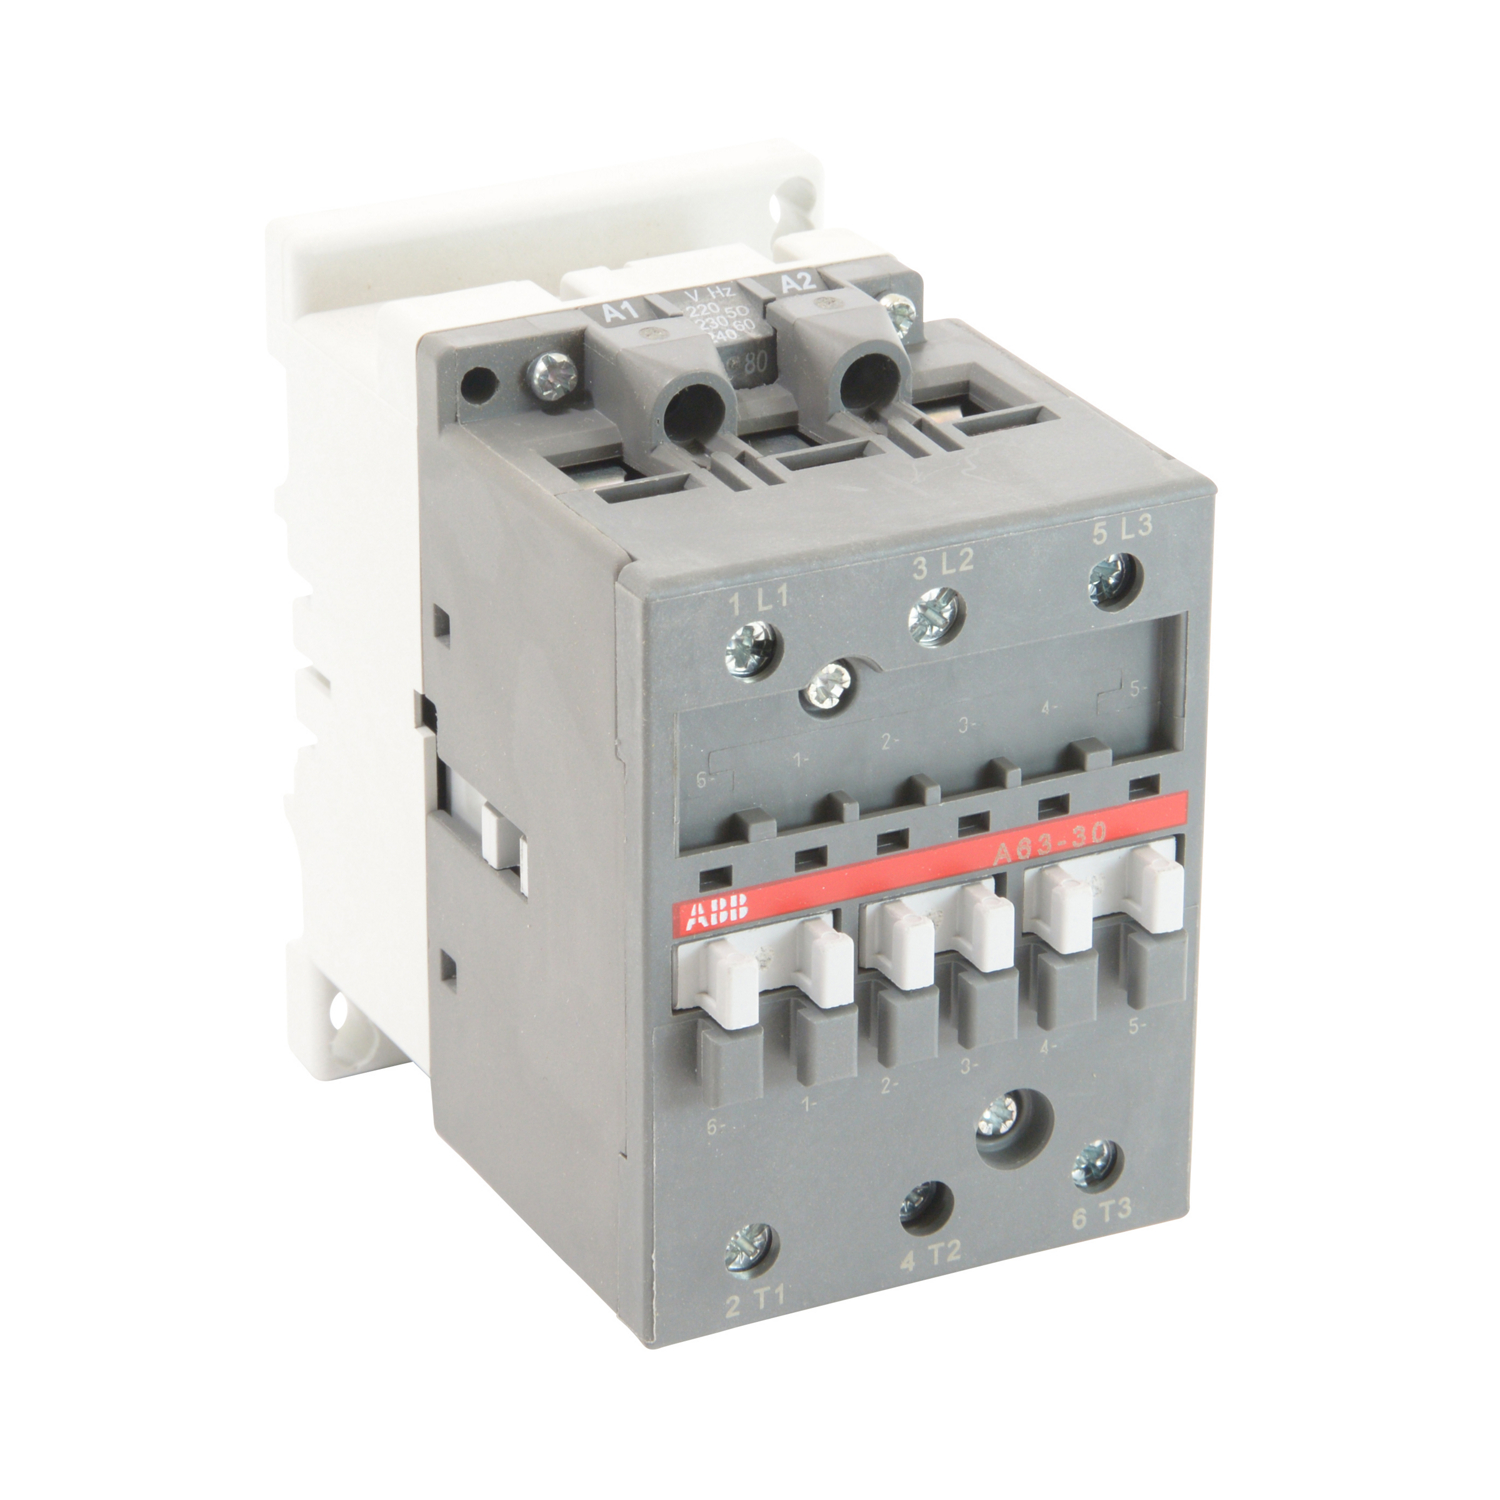 Industrial Control Motor Starter Controls Contactors Standard 240 3 Phase Schneider Contactor Wiring Pole 115 Amp Non Reversing Across The Line With 230